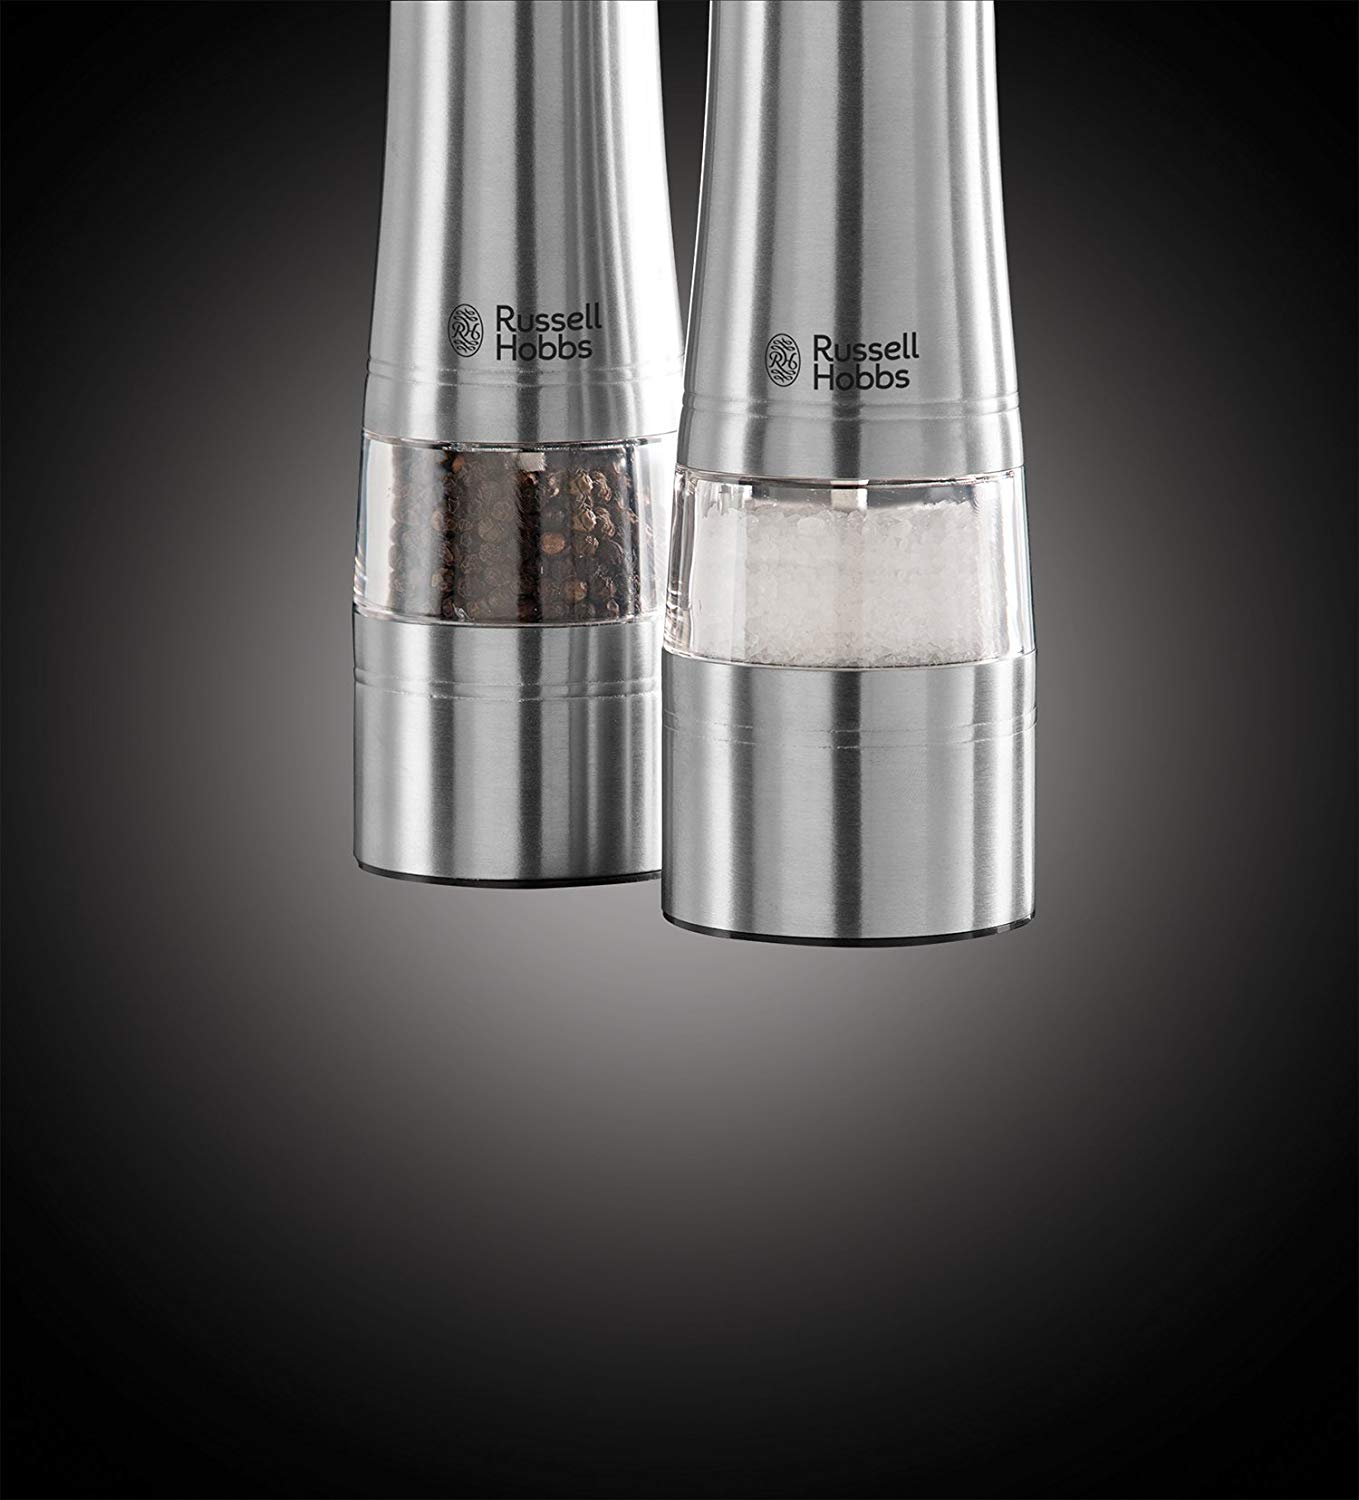 Russell Hobbs Battery Powered Salt & Pepper Grinders – Stainless Steel and Silver 5